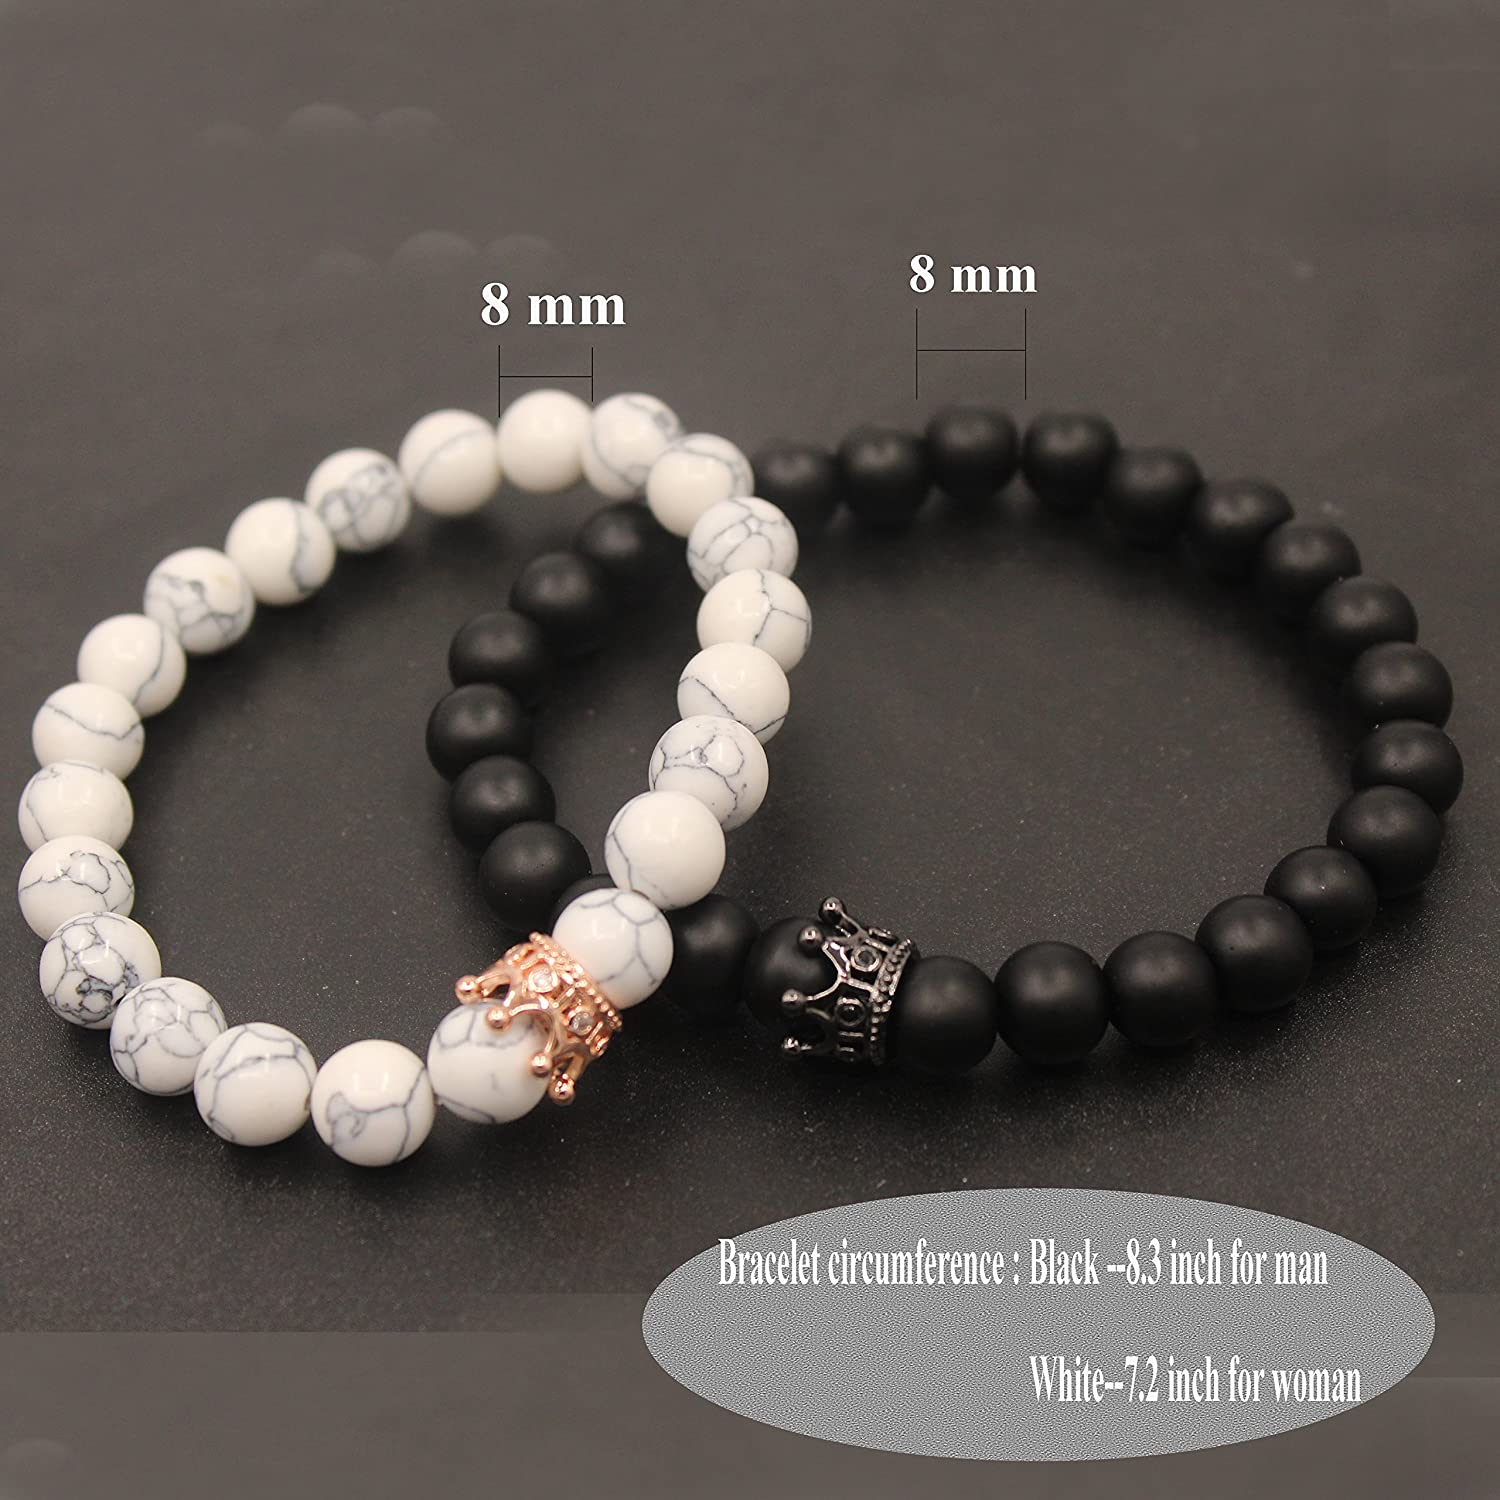 UEUC King&Queen Crown Couple Bracelets His and Her Friendship 8mm Beads Bracelet L4enYU3g